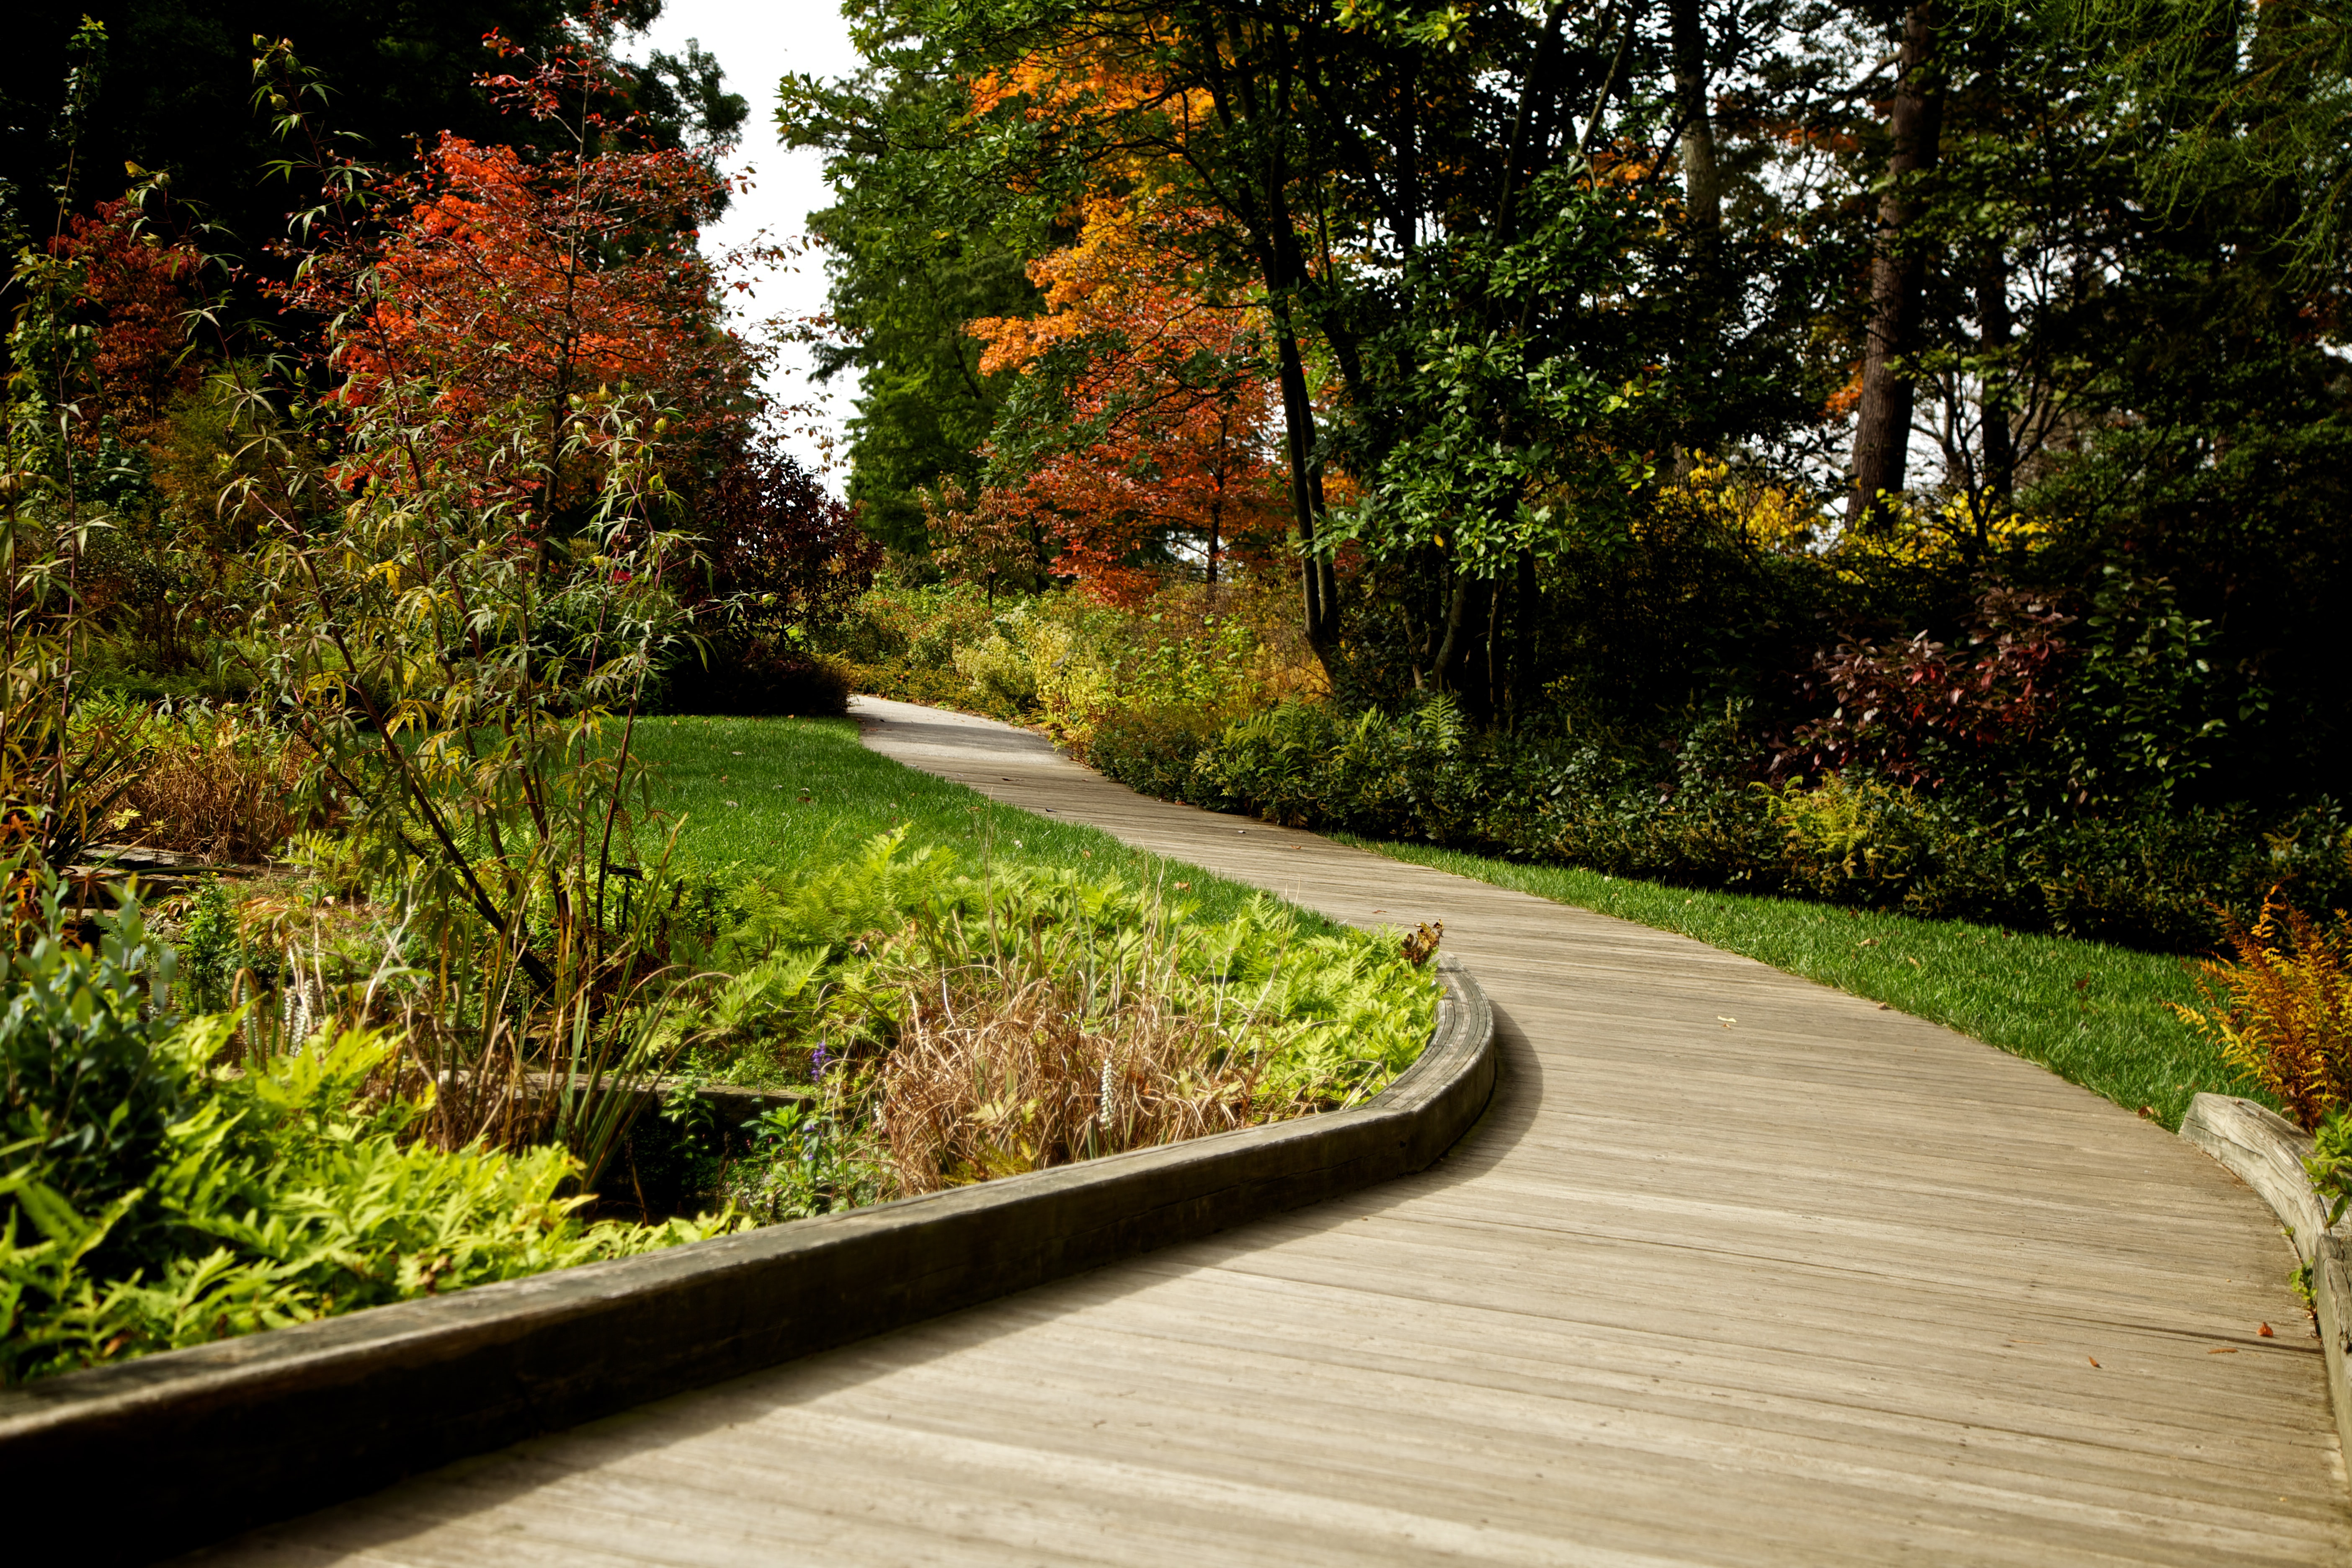 A walkway leads down path through beautifully landscaped grounds